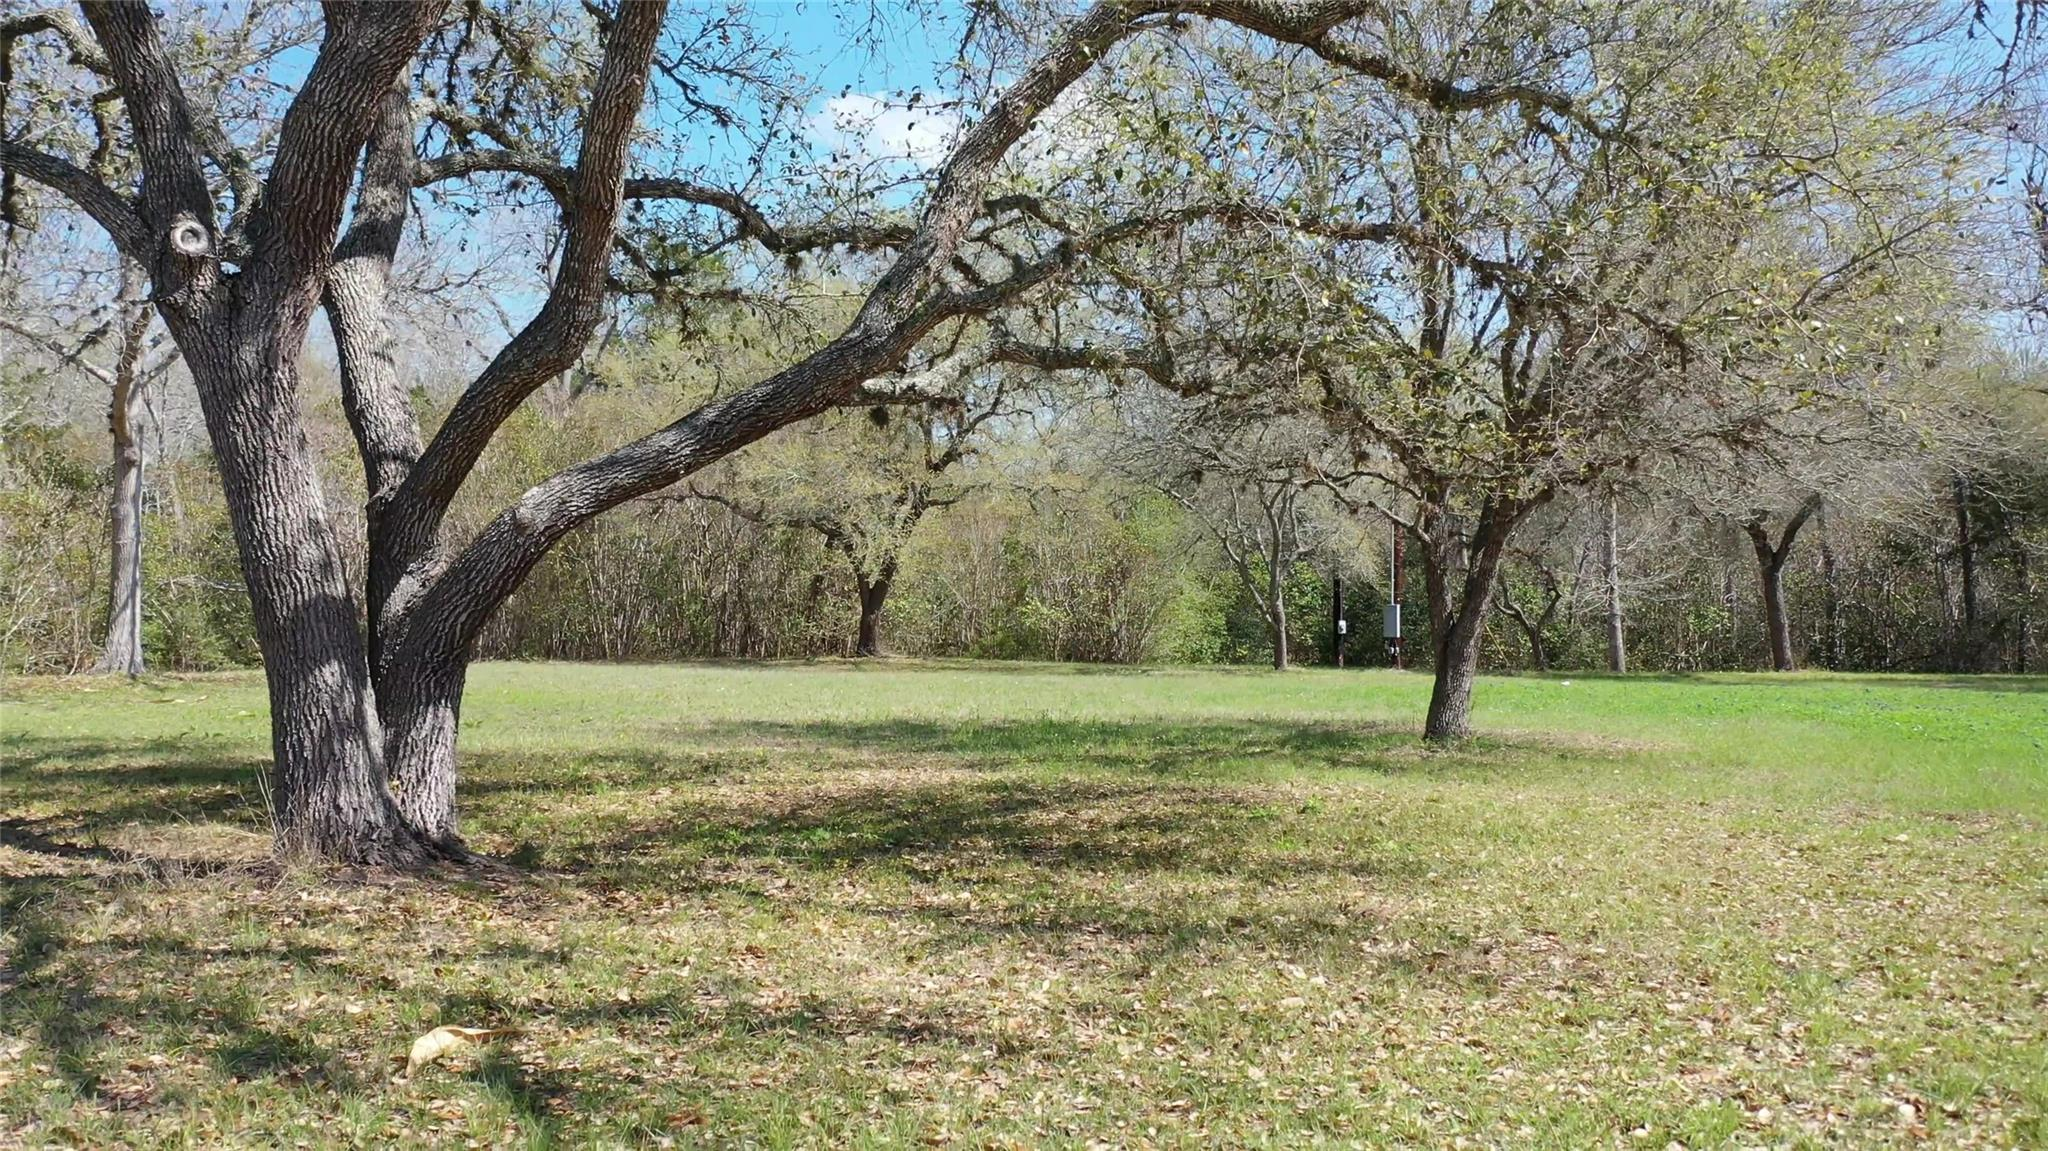 612 Fm 1457 Property Photo - Round Top, TX real estate listing